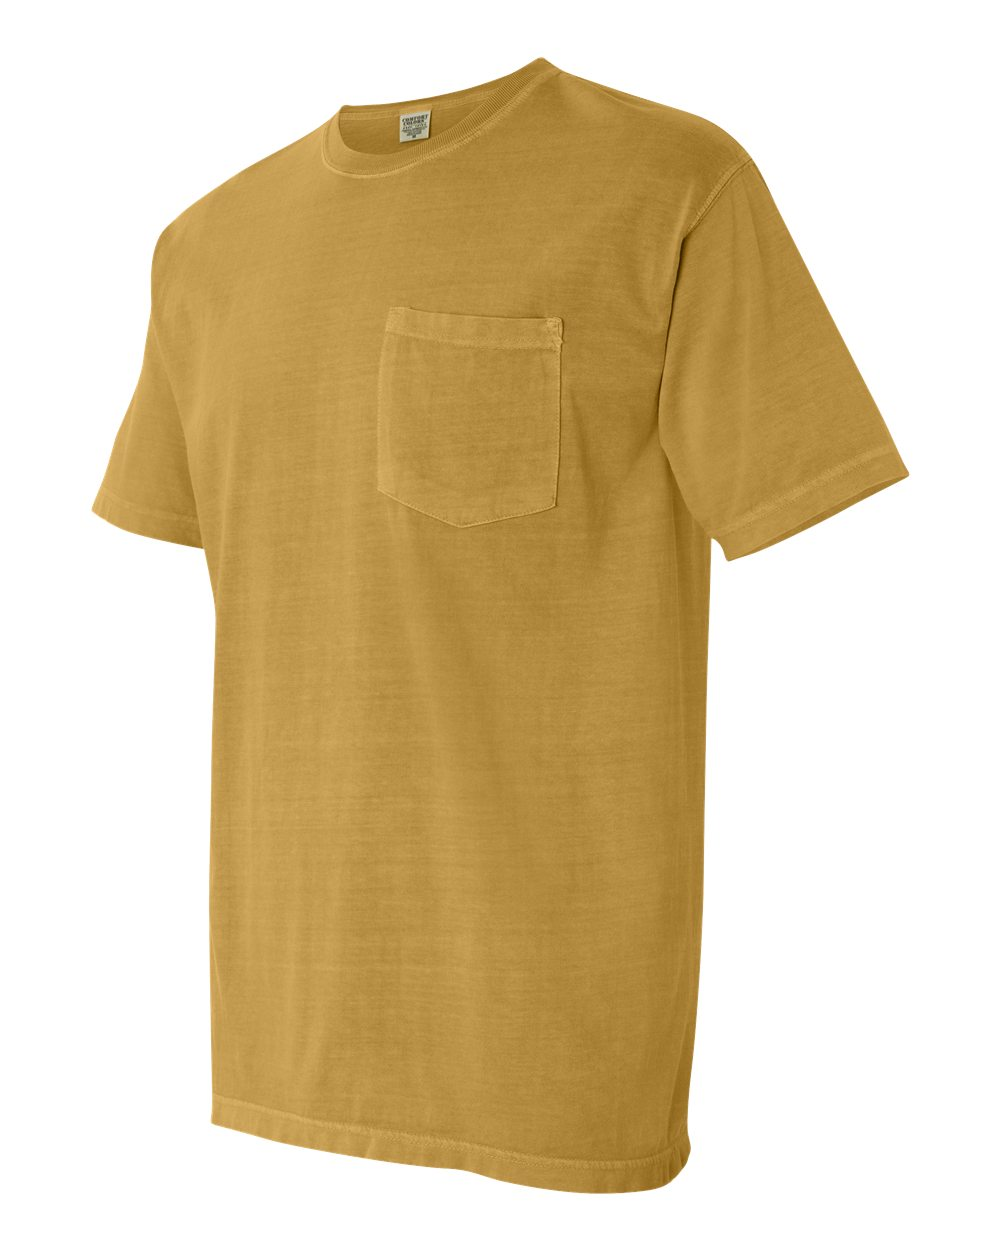 Comfort-Colors-Men-039-s-6-1-oz-Garment-Dyed-Pocket-T-Shirt-6030CC-S-3XL thumbnail 63